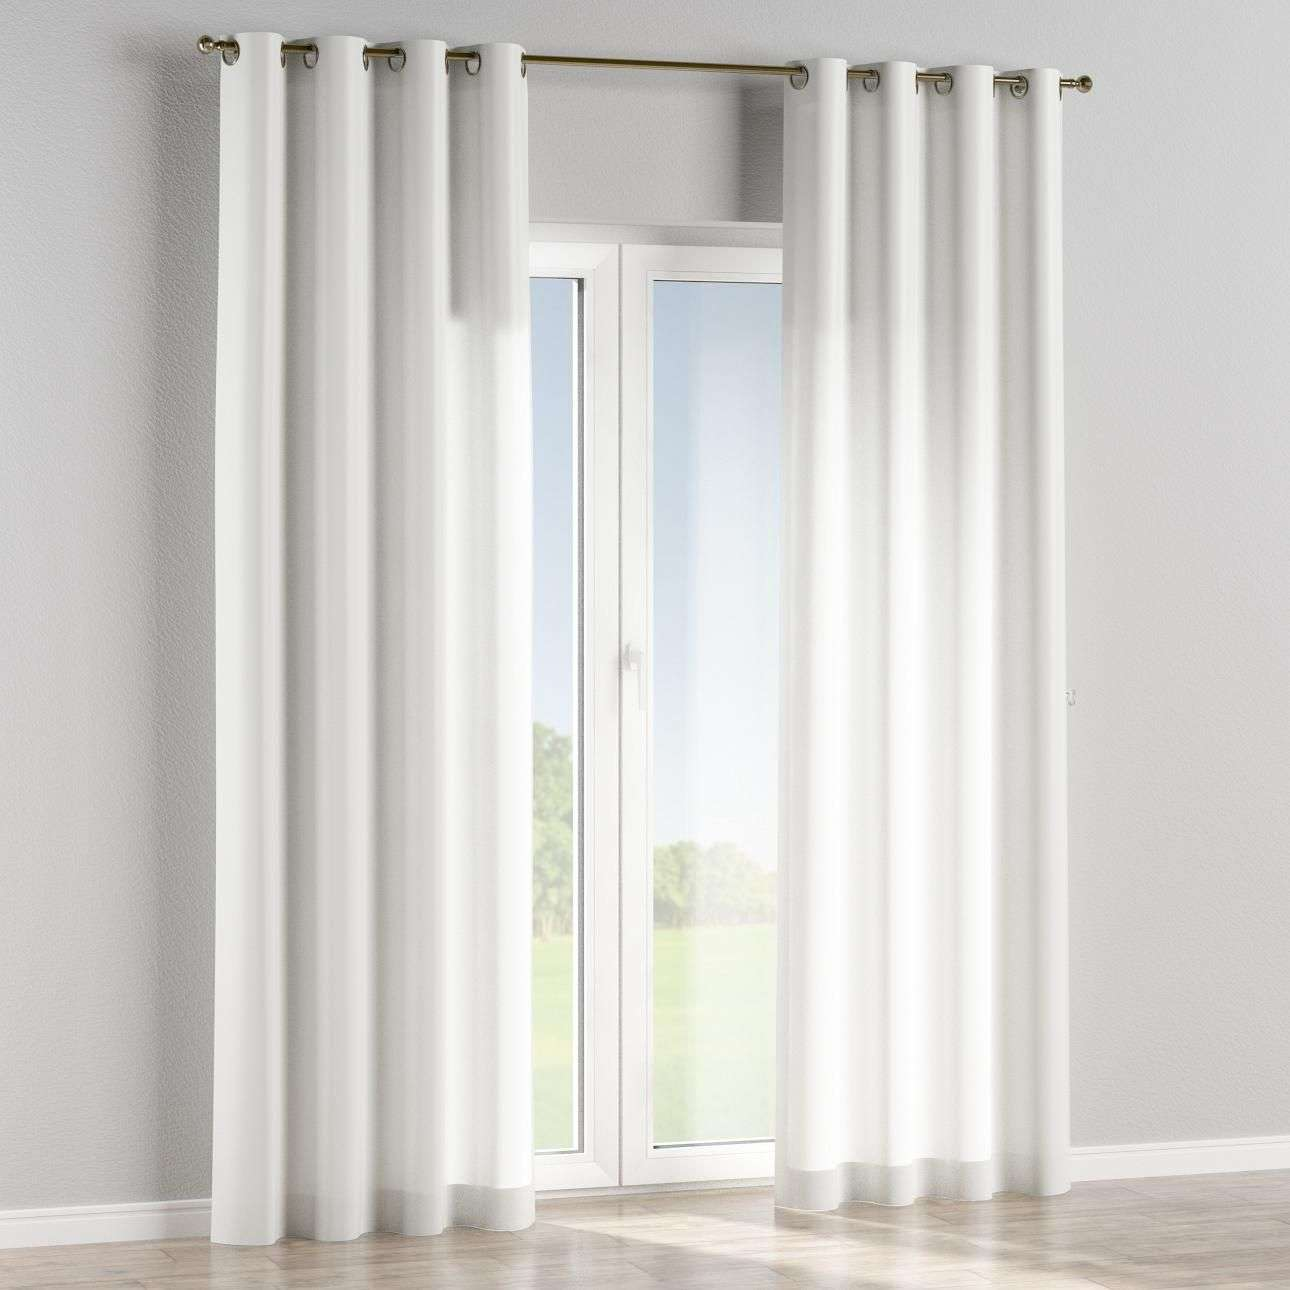 Eyelet curtains in collection Arcana, fabric: 104-01